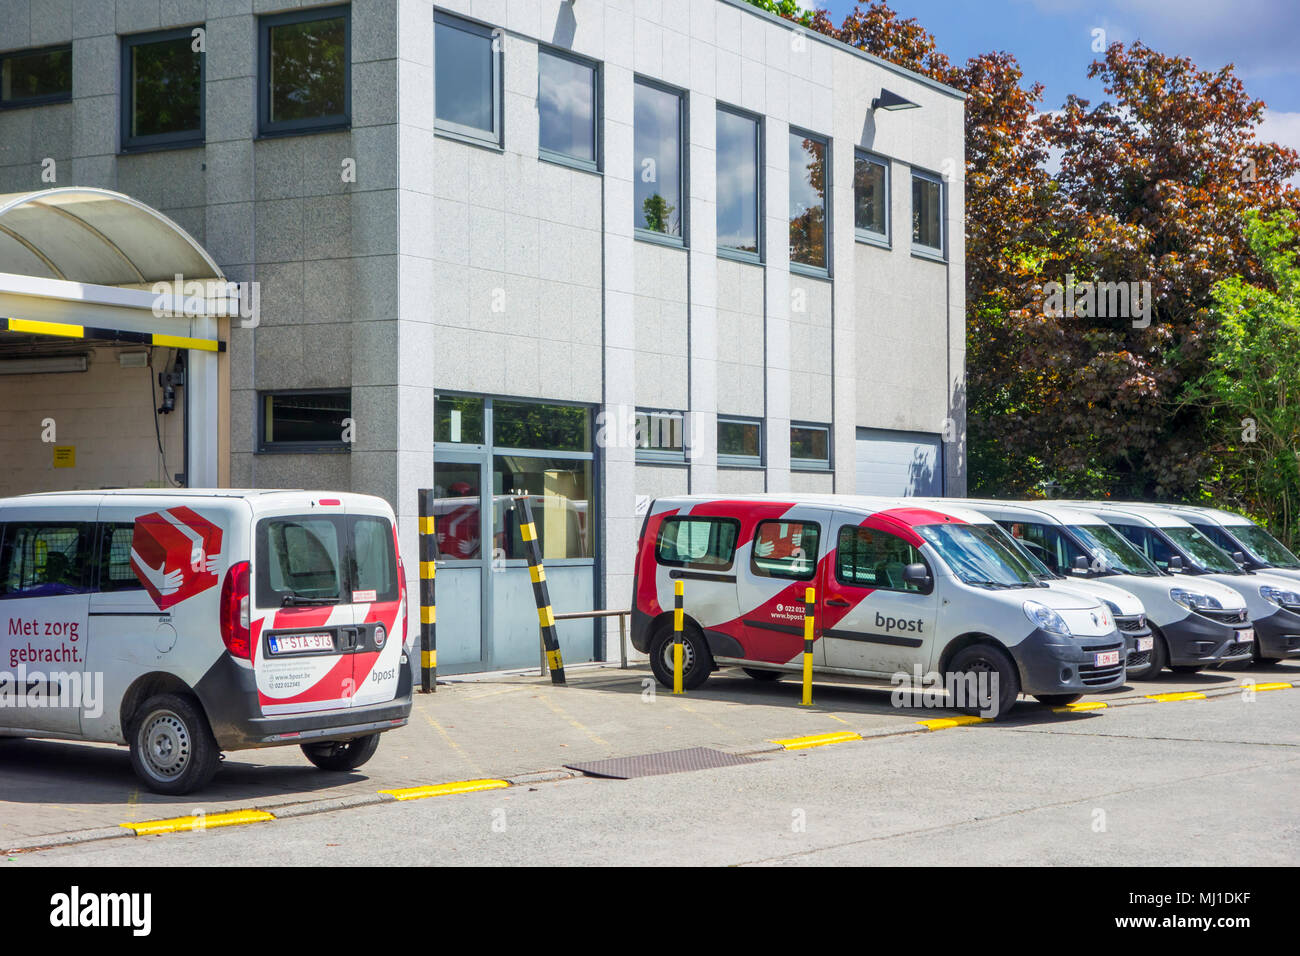 Red-white post delivery cars parked in front of a Bpost post office, Belgian company responsible for the delivery of national and international mail - Stock Image